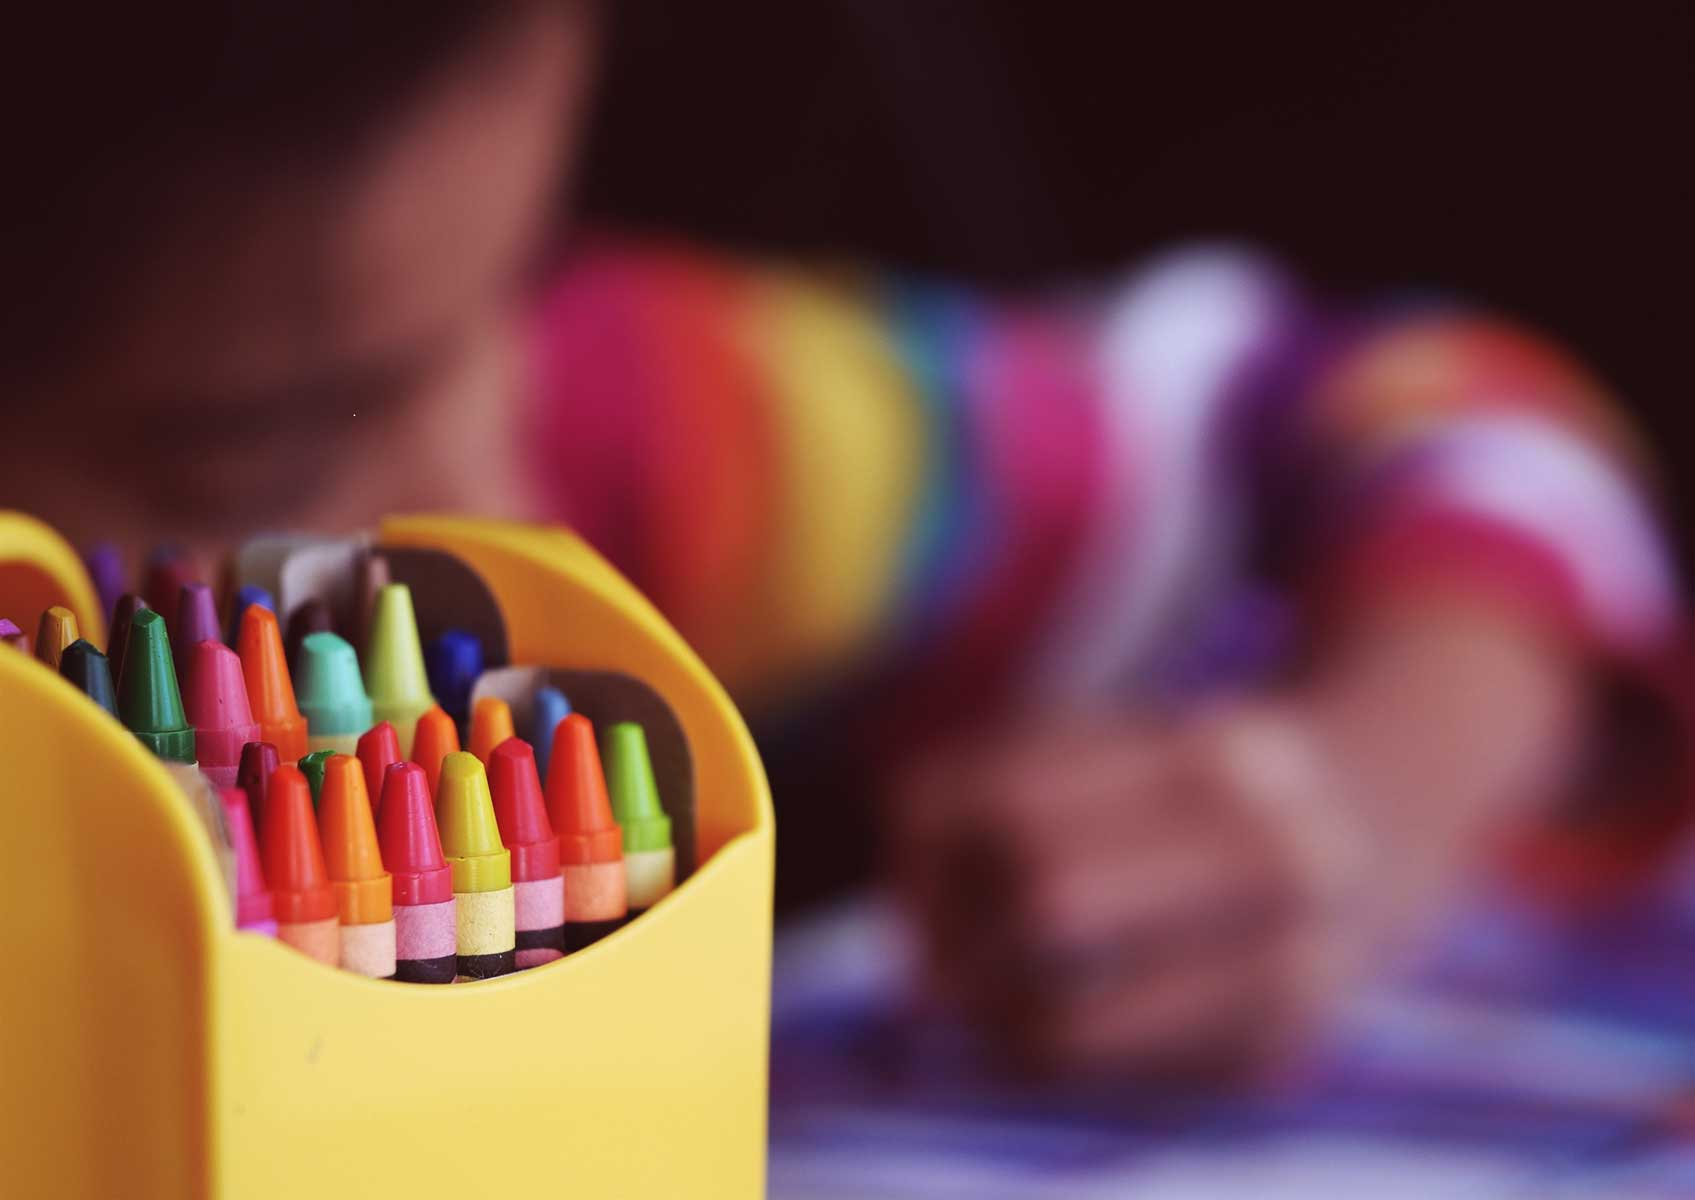 A box of crayons in front of a child who is coloring